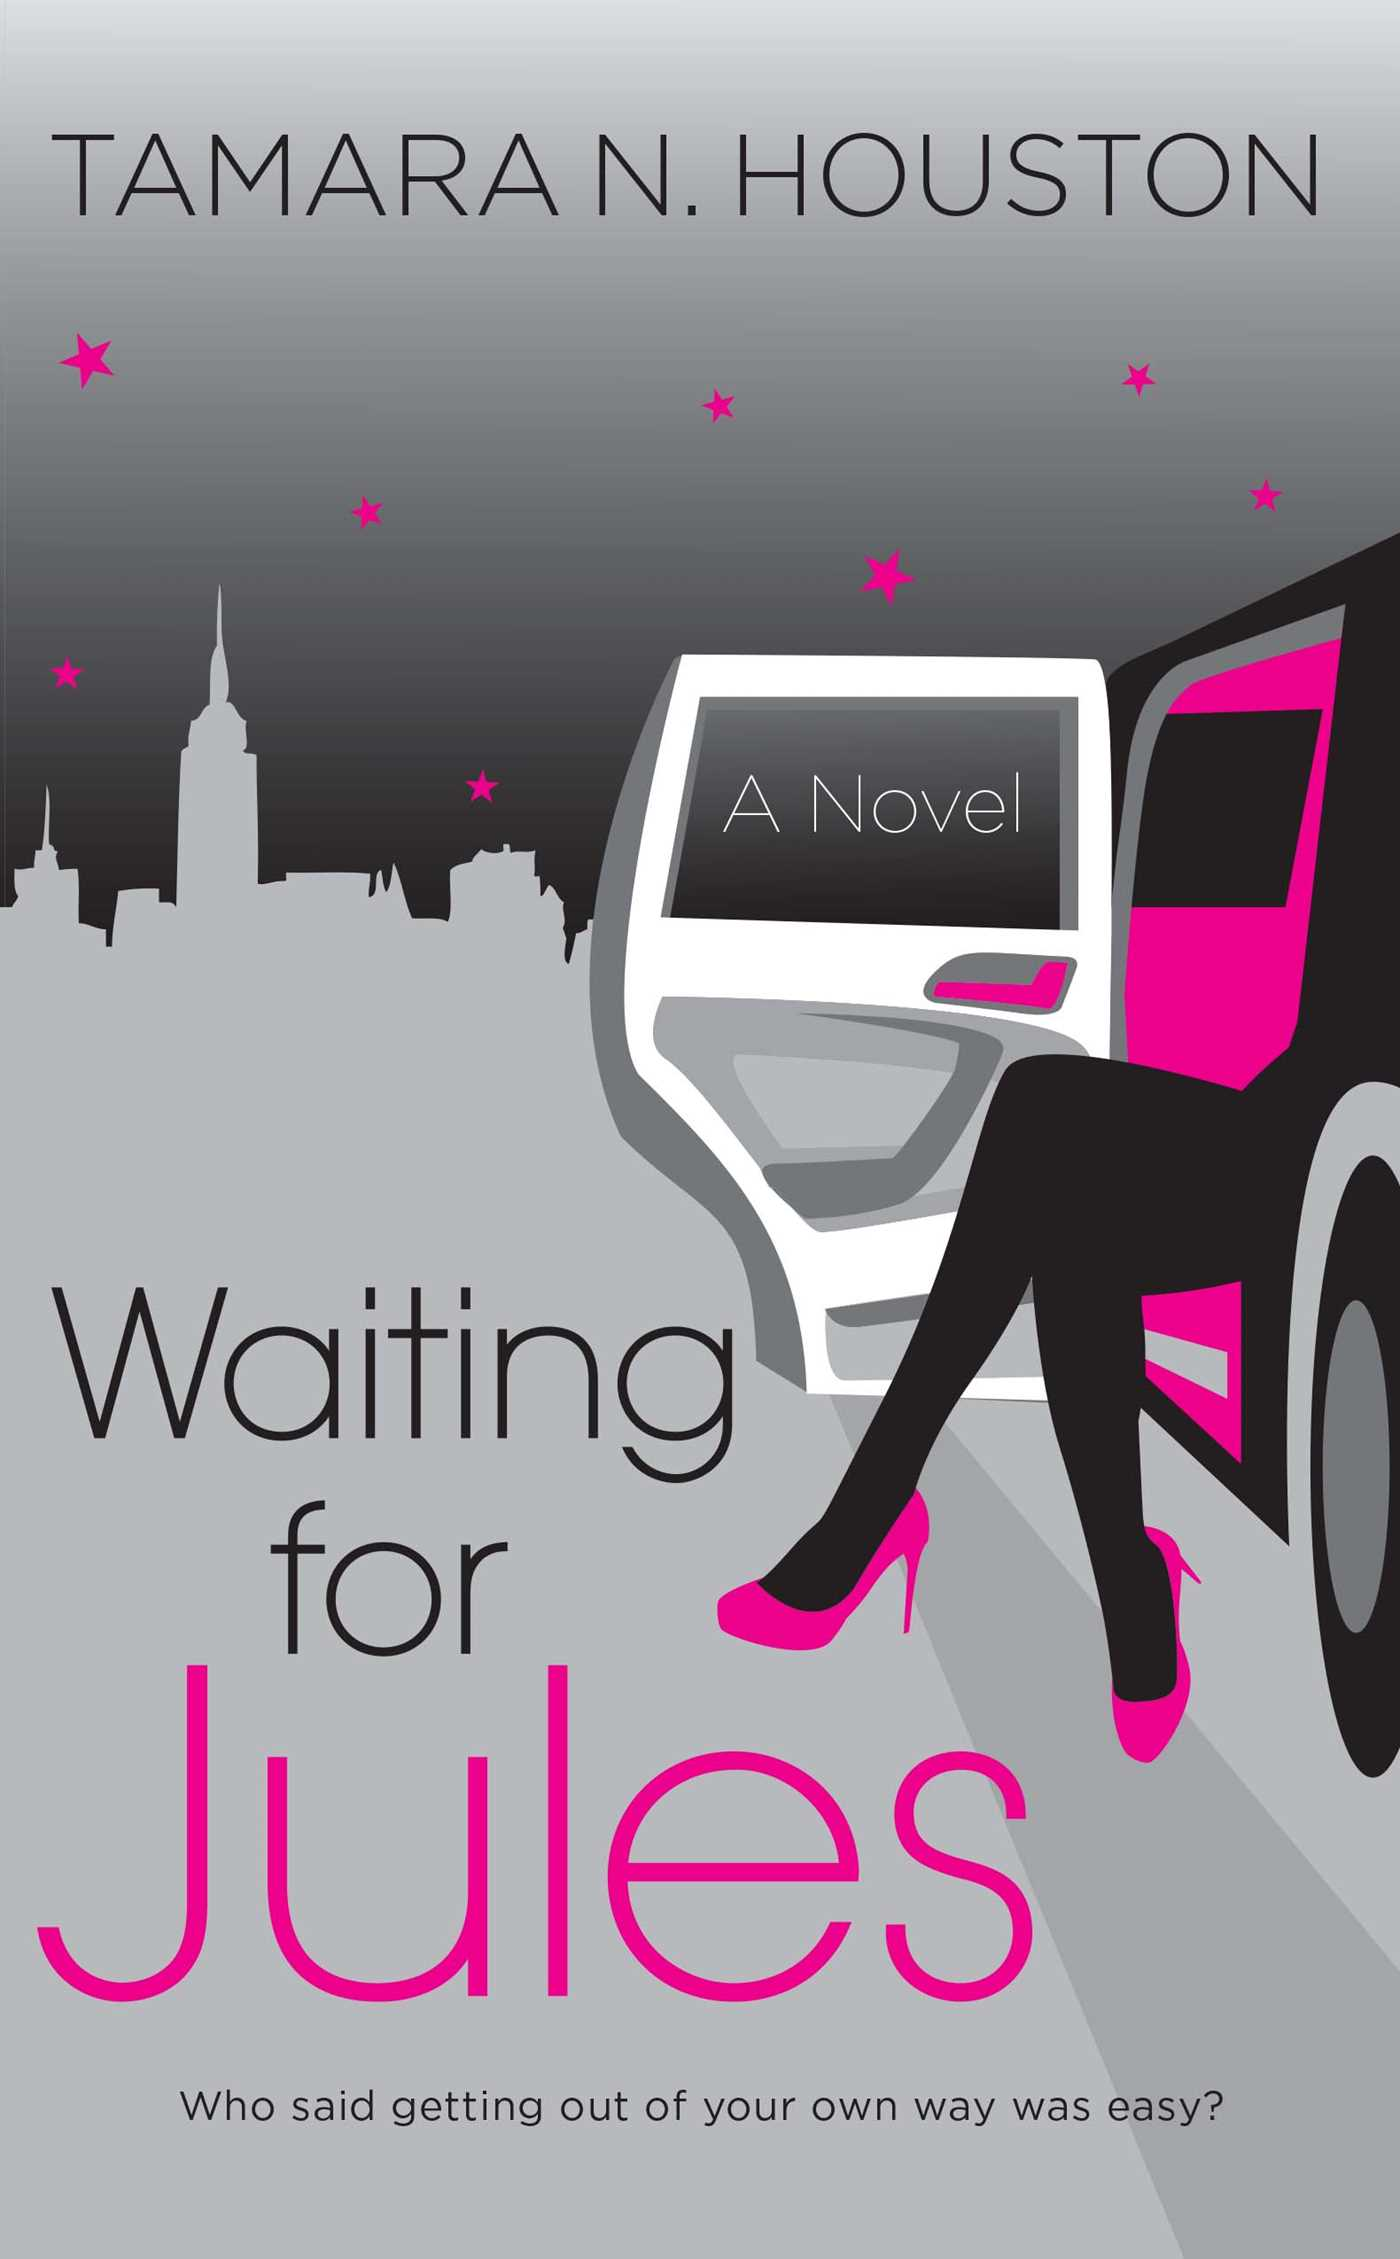 Waiting-for-jules-9781451698534_hr